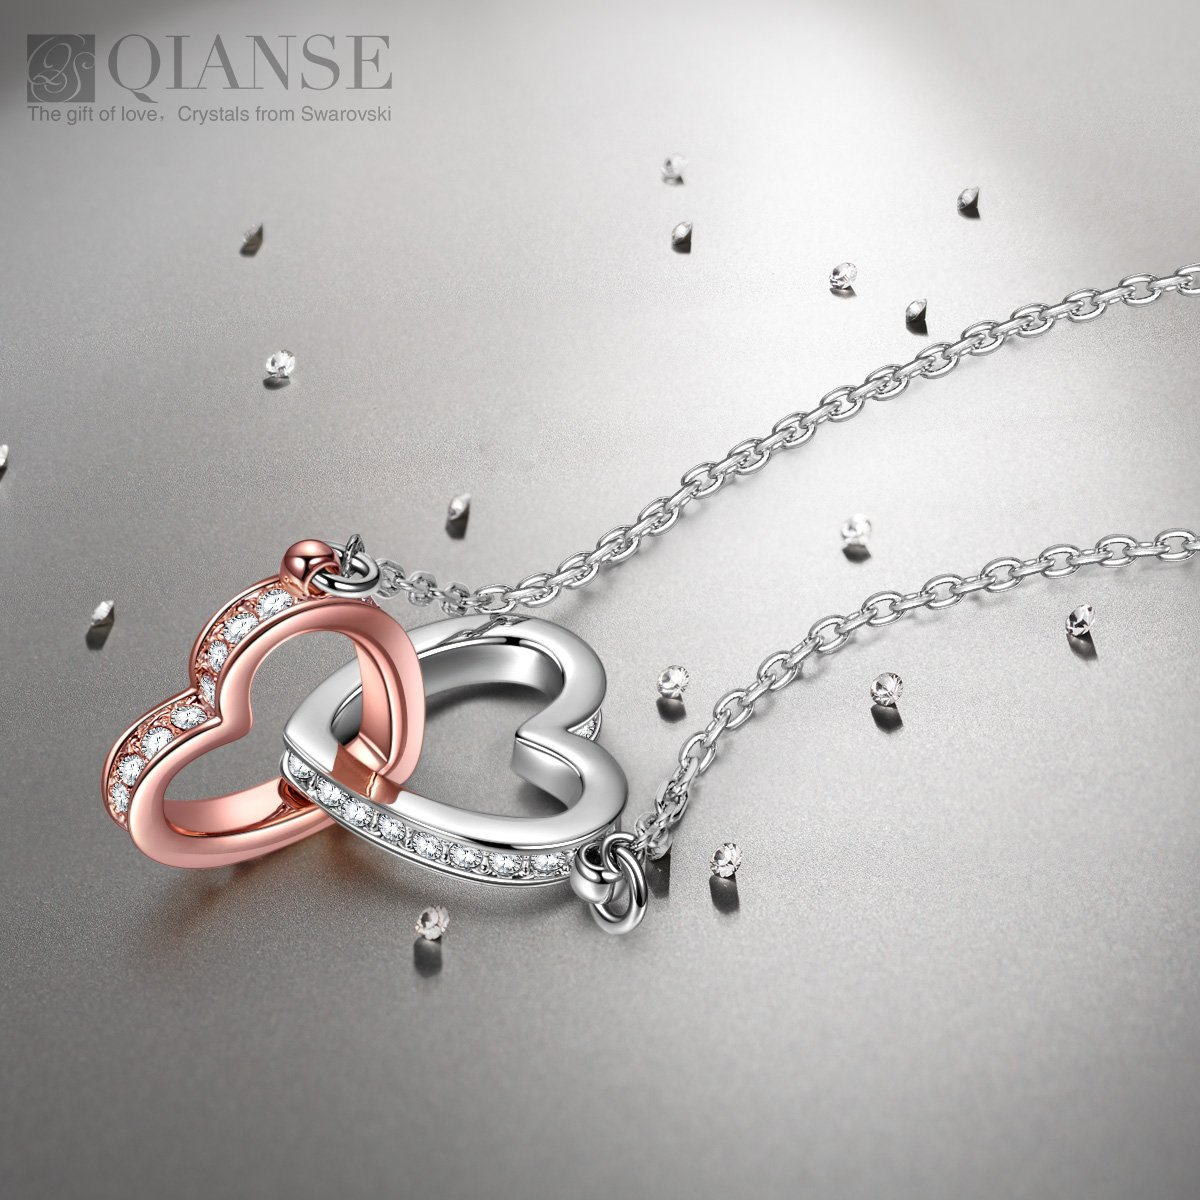 QIANSE Love Heart Necklaces for Women for Women Teen Girls Swarovski Crystal Jewelry Silver Necklace for Her Birthday Gifts for Mom Grandma Wife Girlfriend Daughter by QIANSE (Image #2)